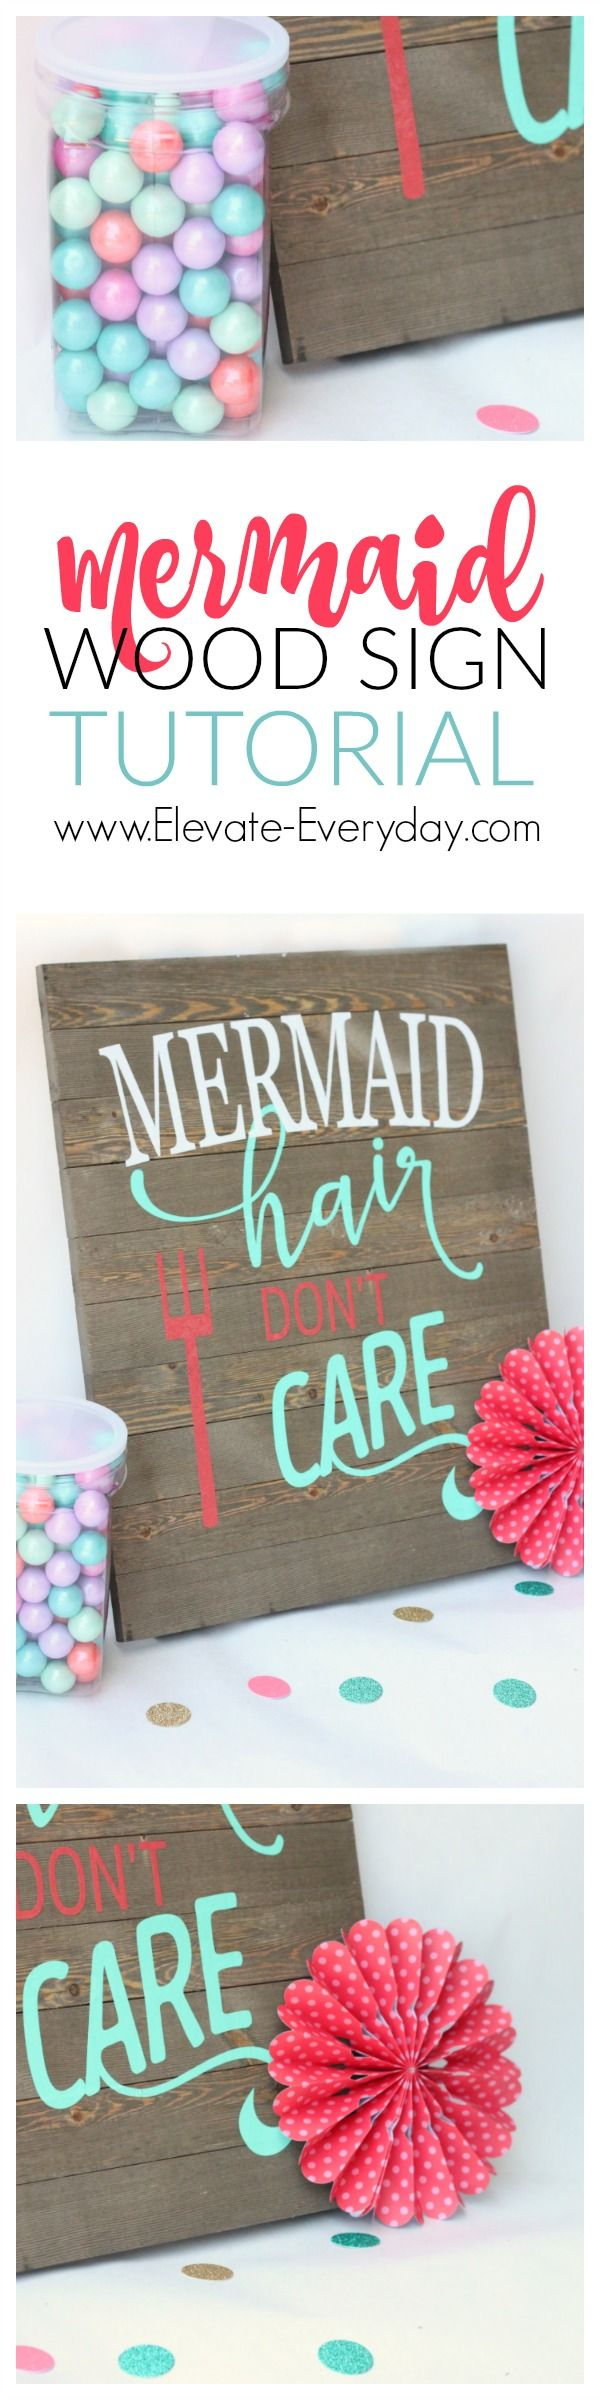 Bathroom Signs Walmart how to make this cute mermaid sign. didn't even have to make the